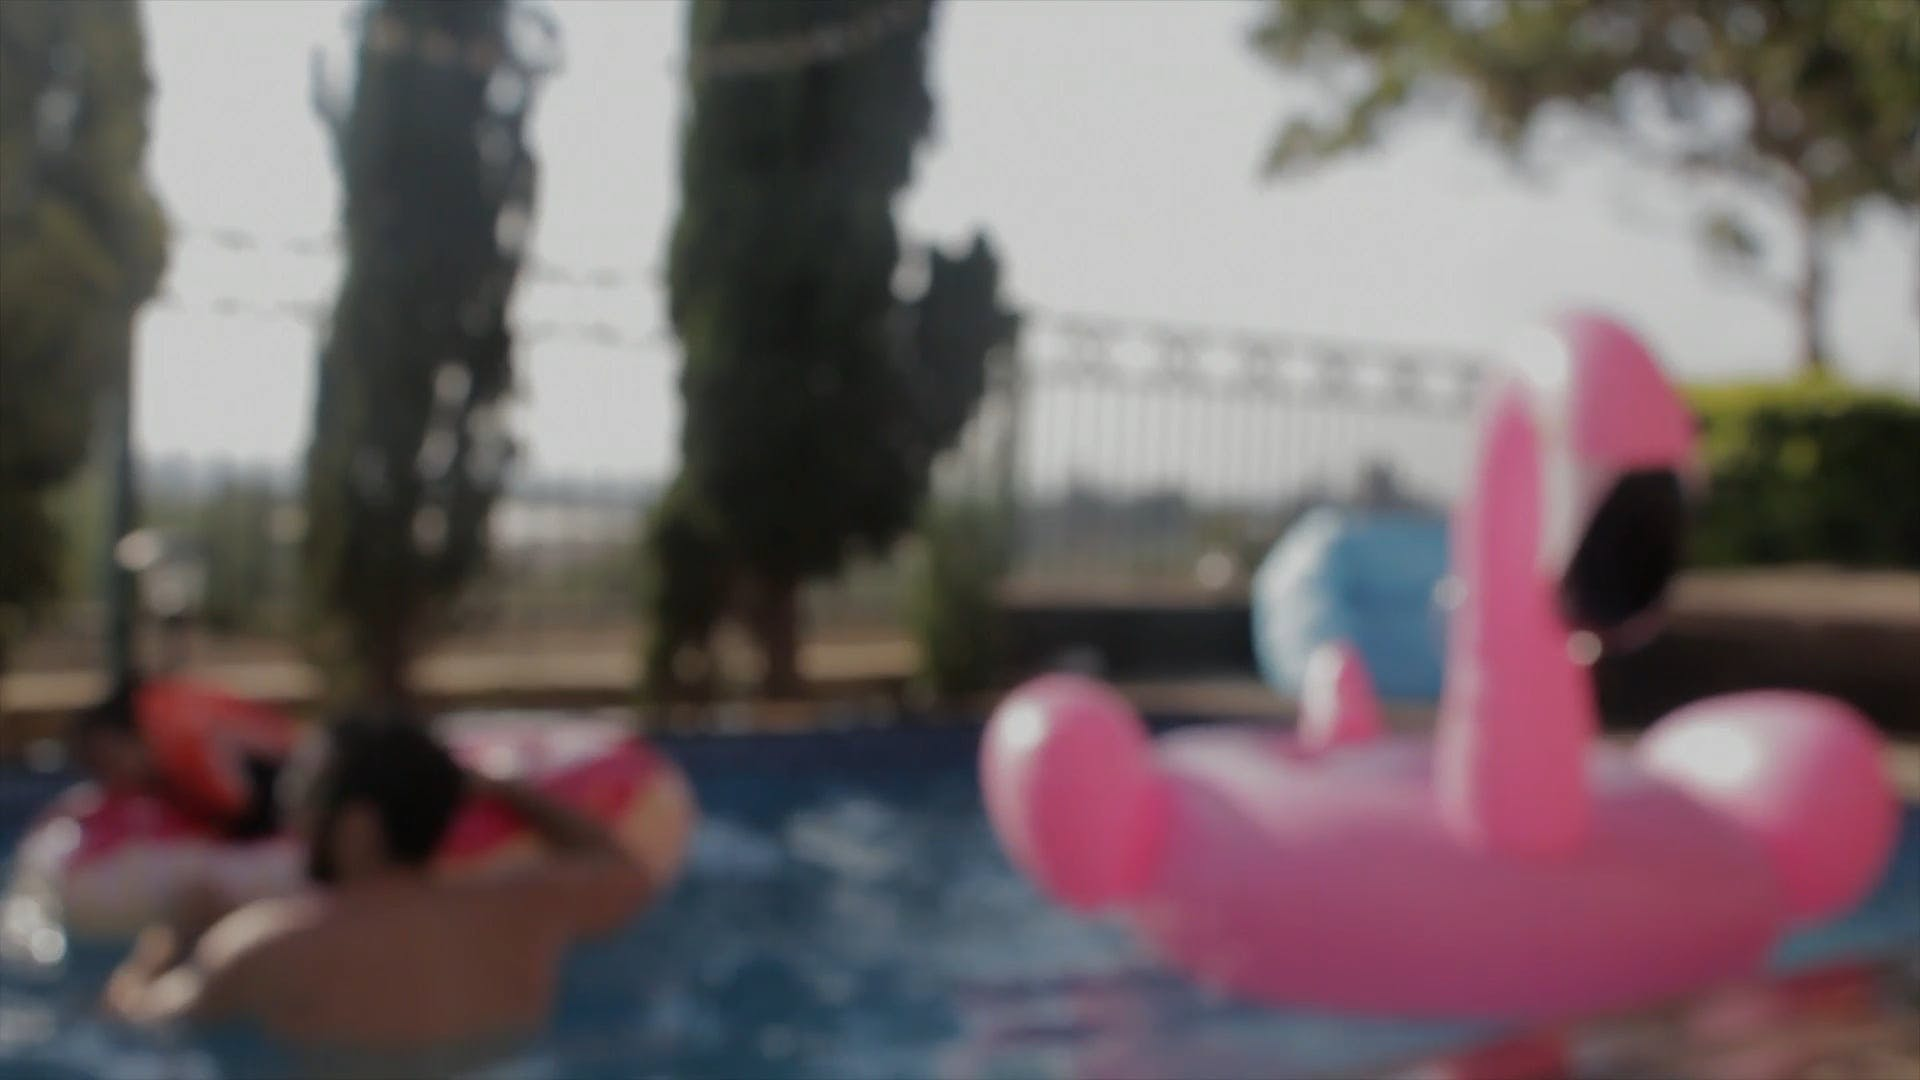 Blurry Video Of People In A Pool